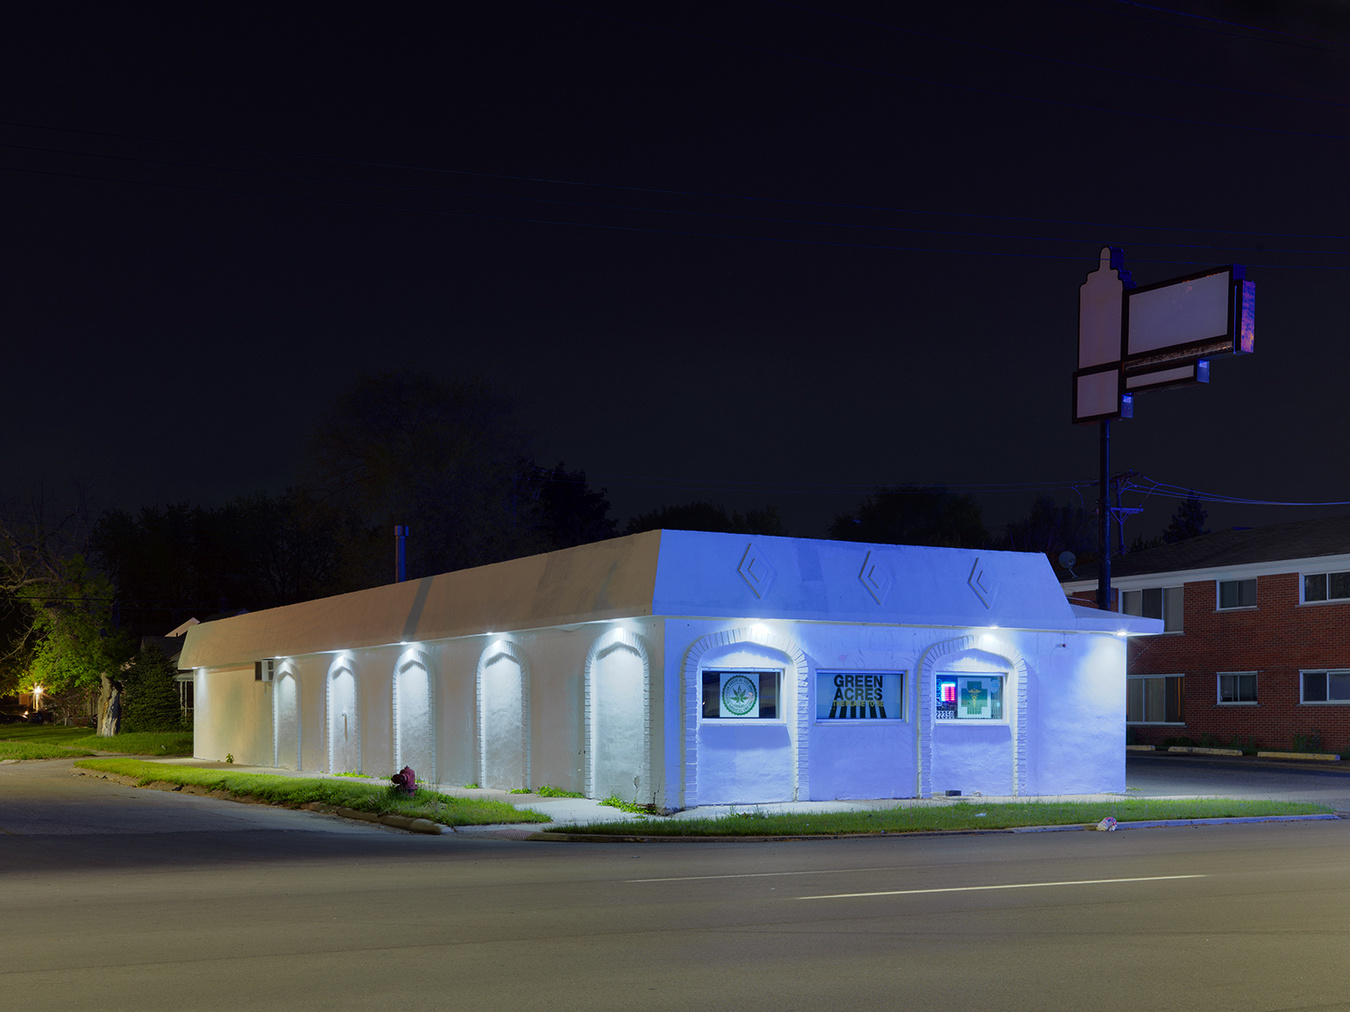 Medical Marijuana Dispensary #81, Eastside, Detroit 2016